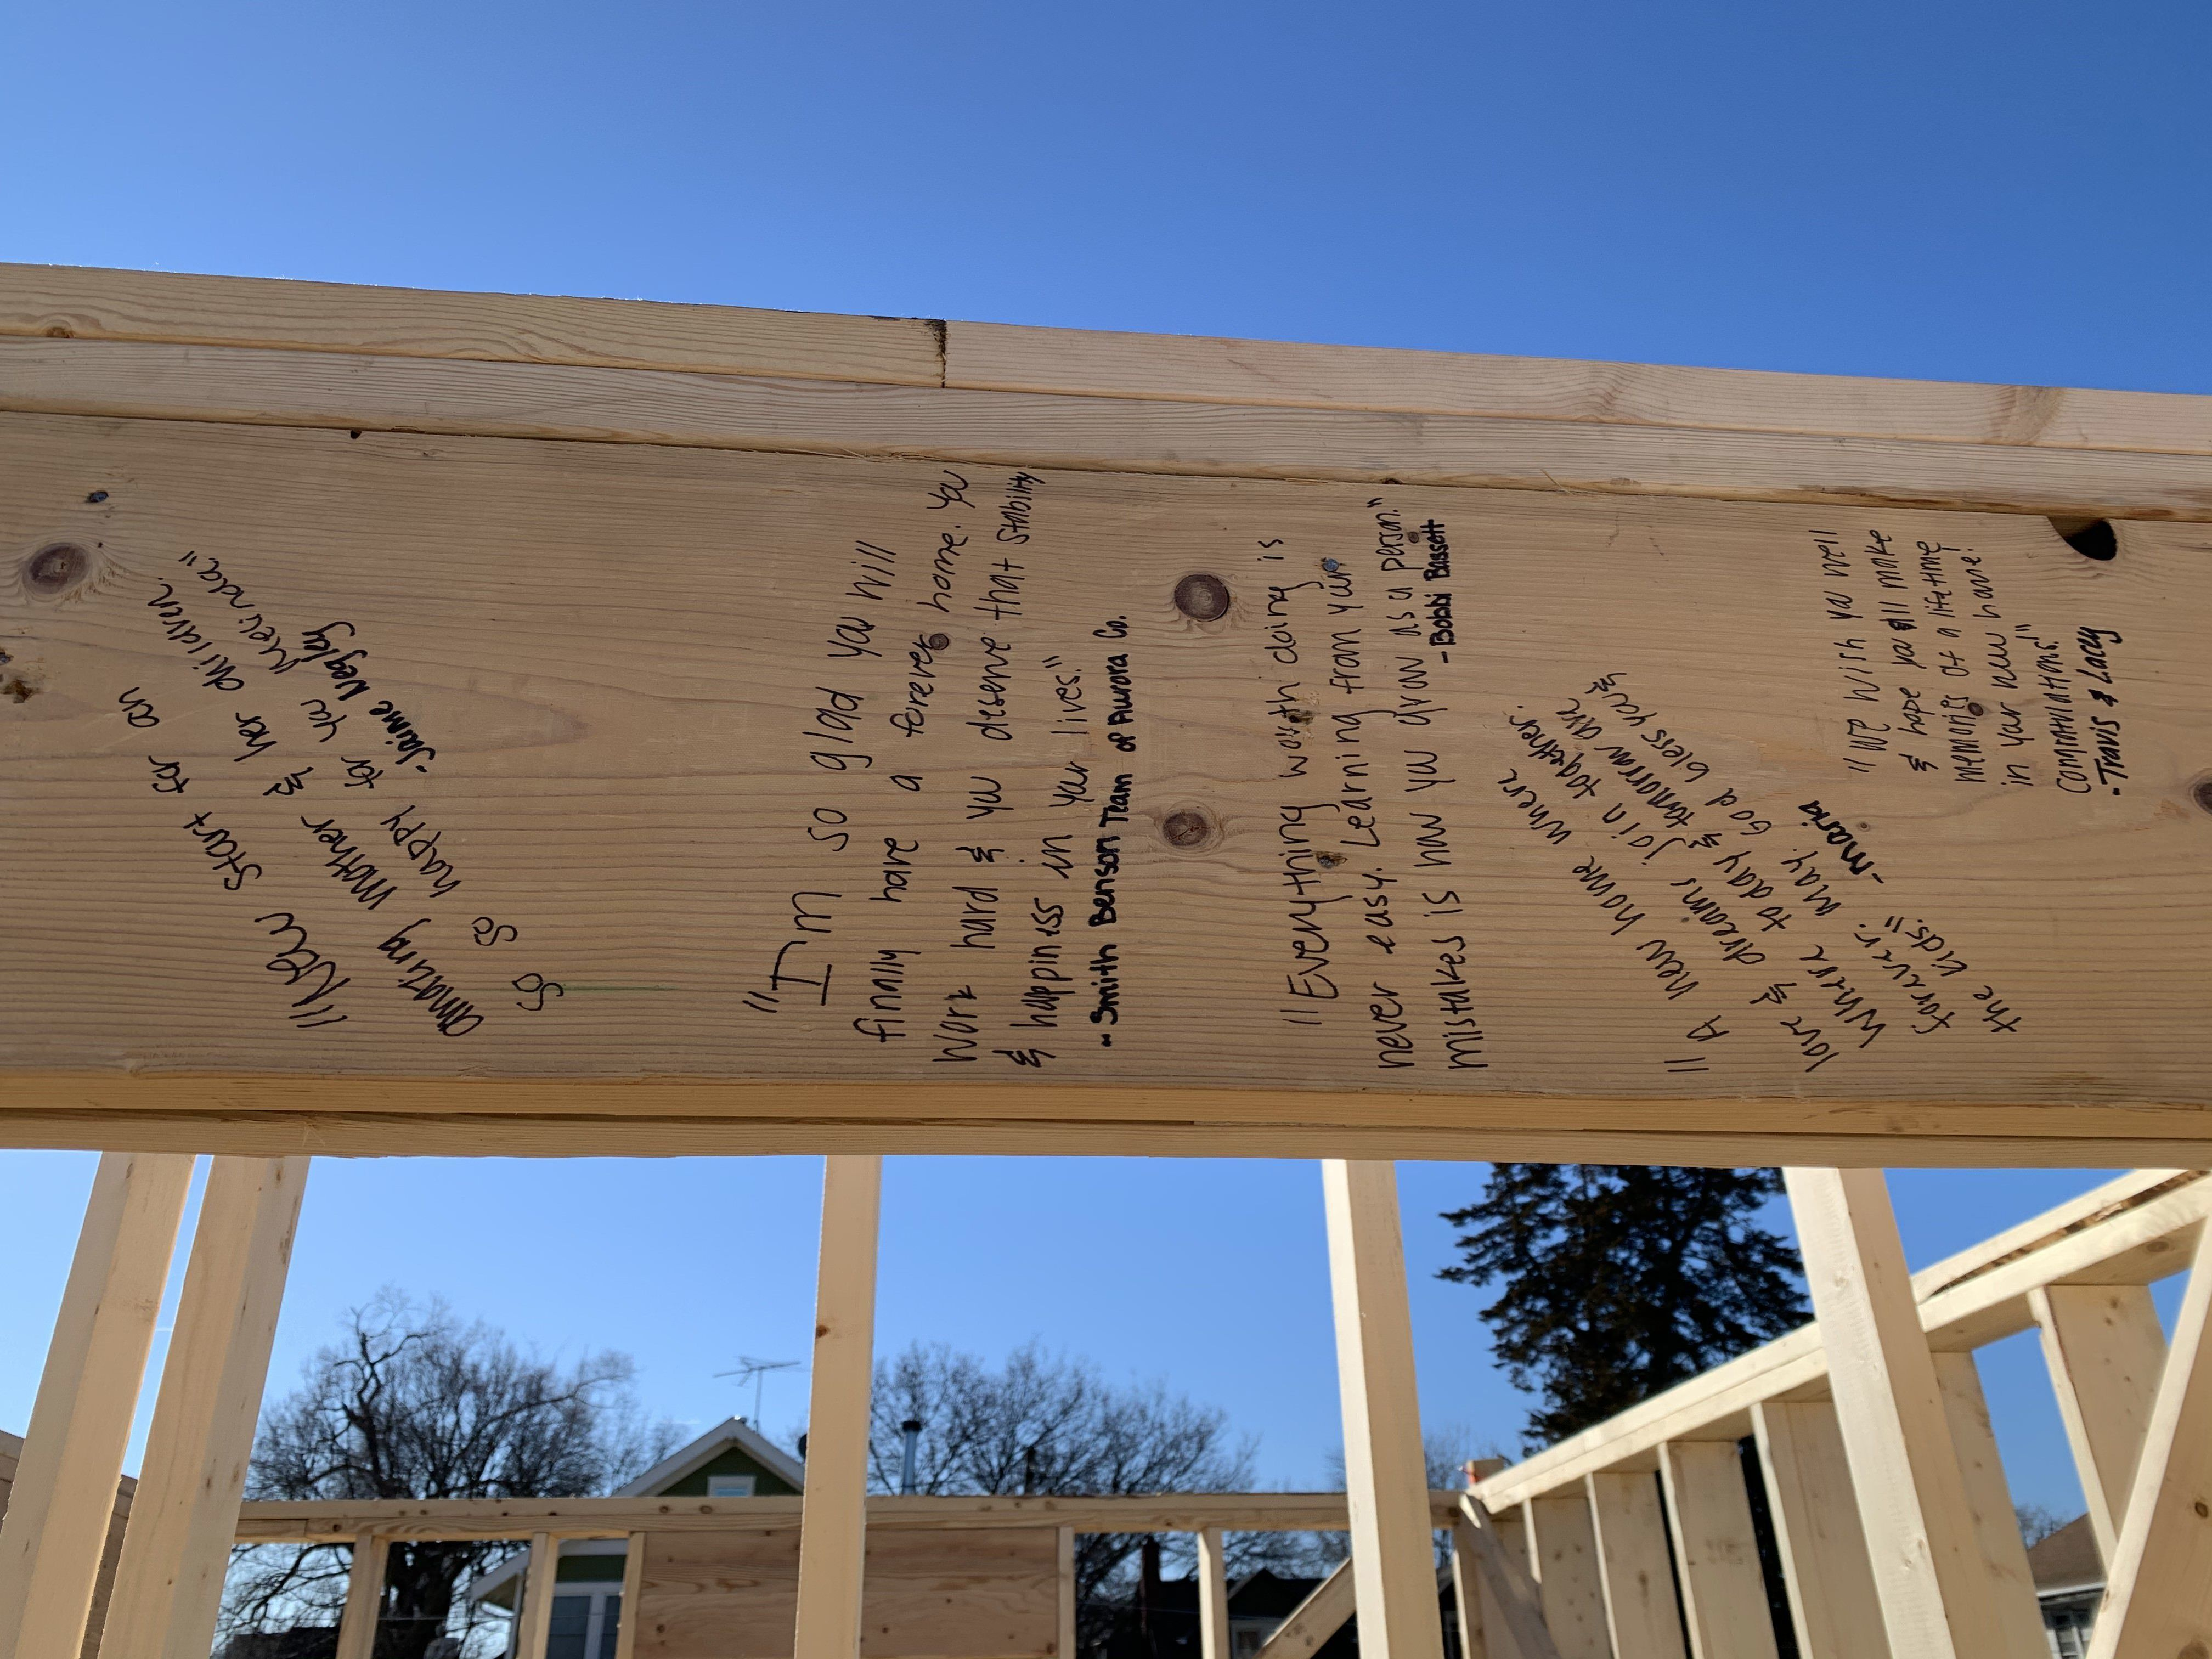 Information on applying for a Habitat House